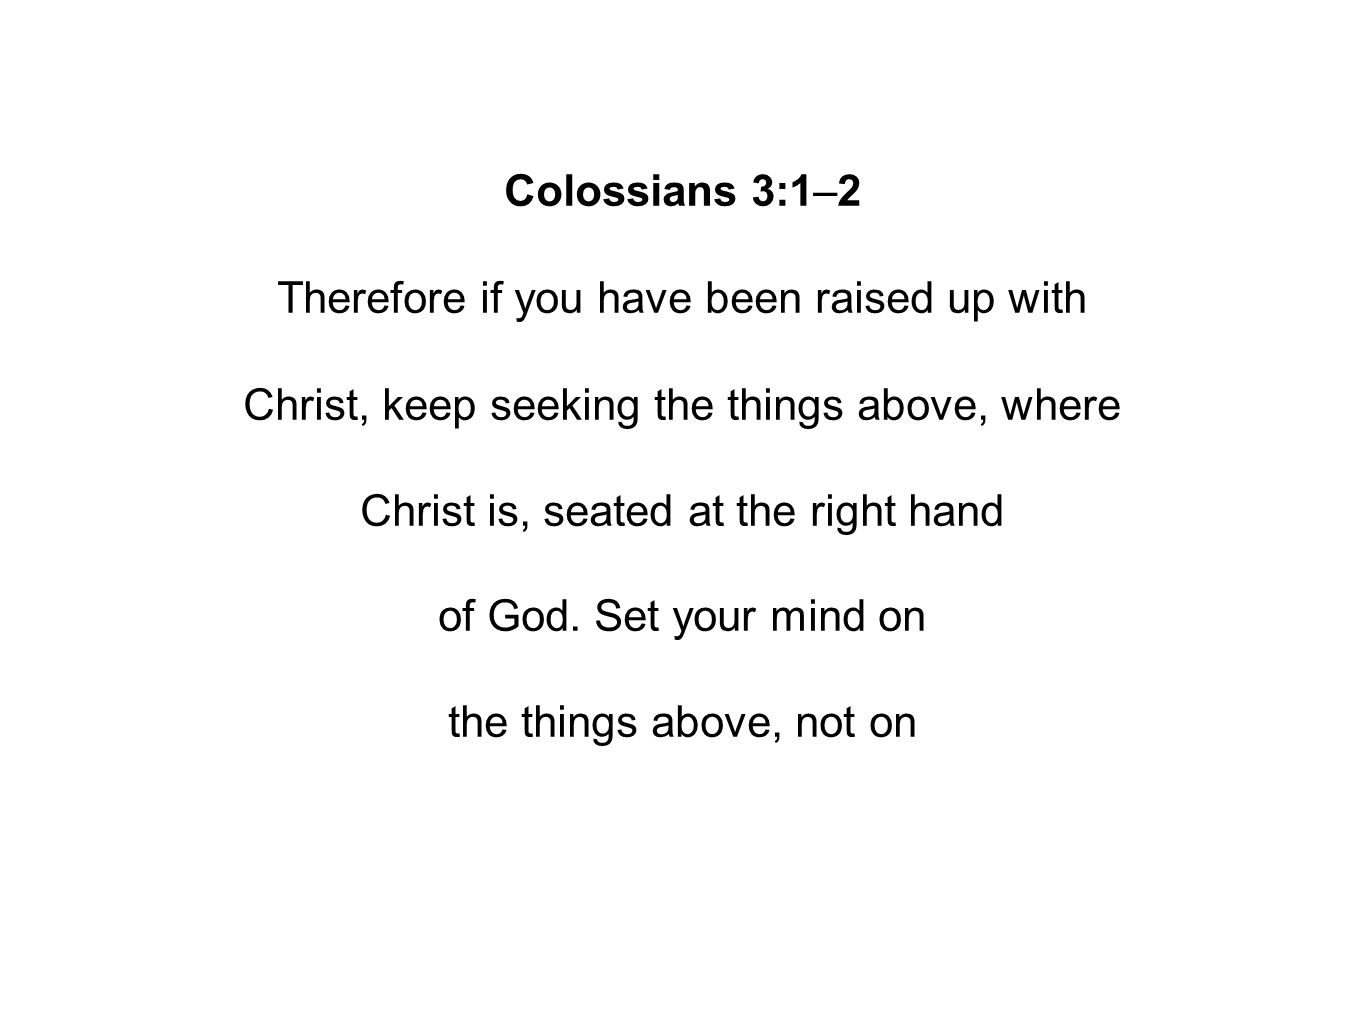 Colossians 3:1–2 Therefore if you have been raised up with Christ, keep seeking the things above, where Christ is, seated at the right hand of God.